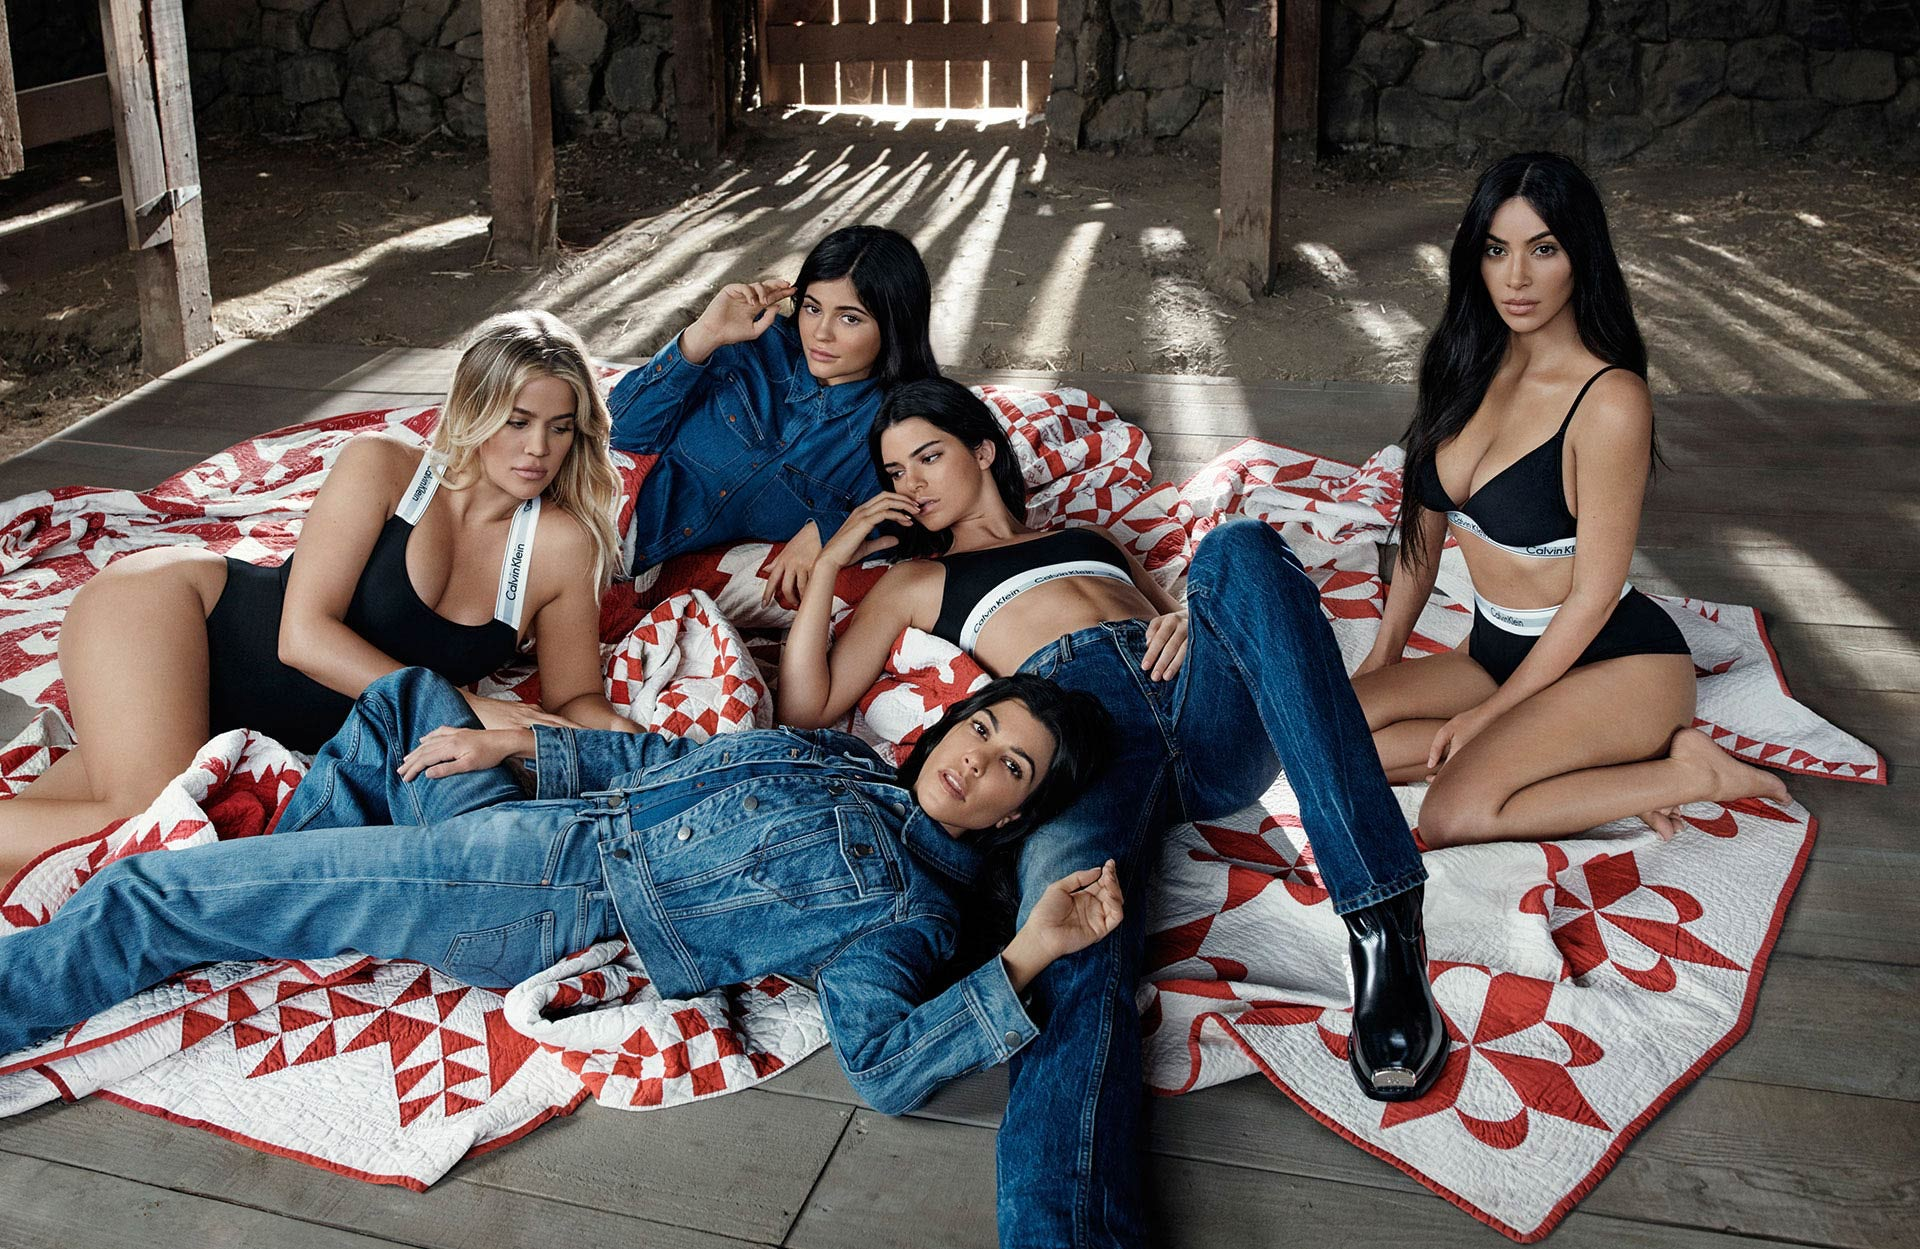 Calvin Klein campaign featuring the Kardashian-Jenner sisters | Source: Calvin Klein